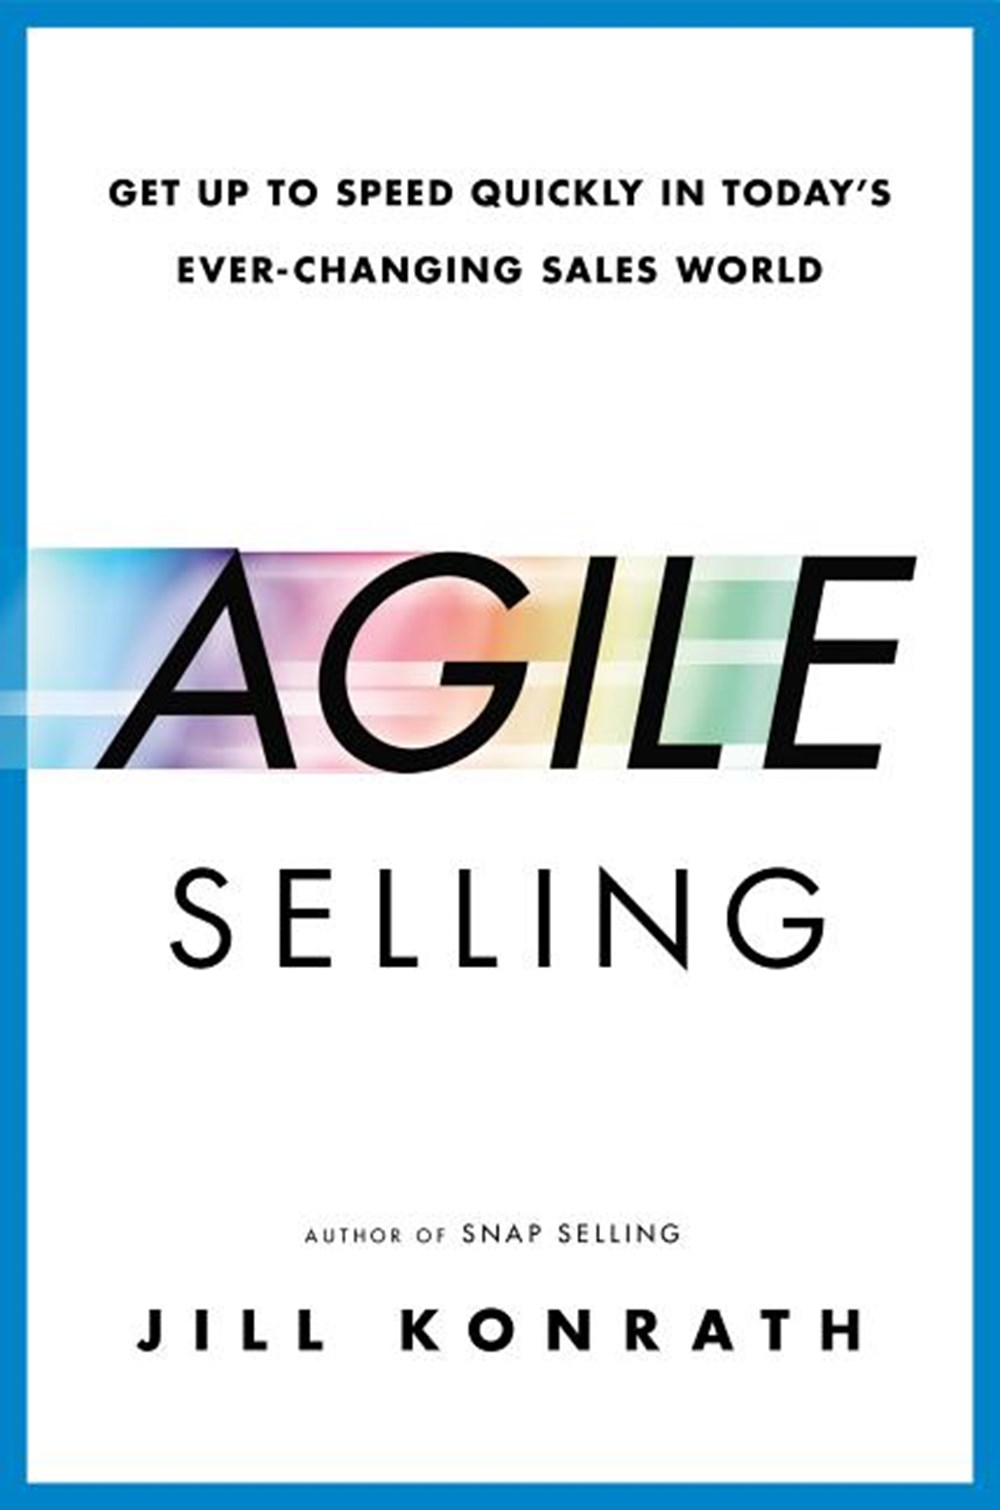 Agile Selling Get Up to Speed Quickly in Today's Ever-Changing Sales World